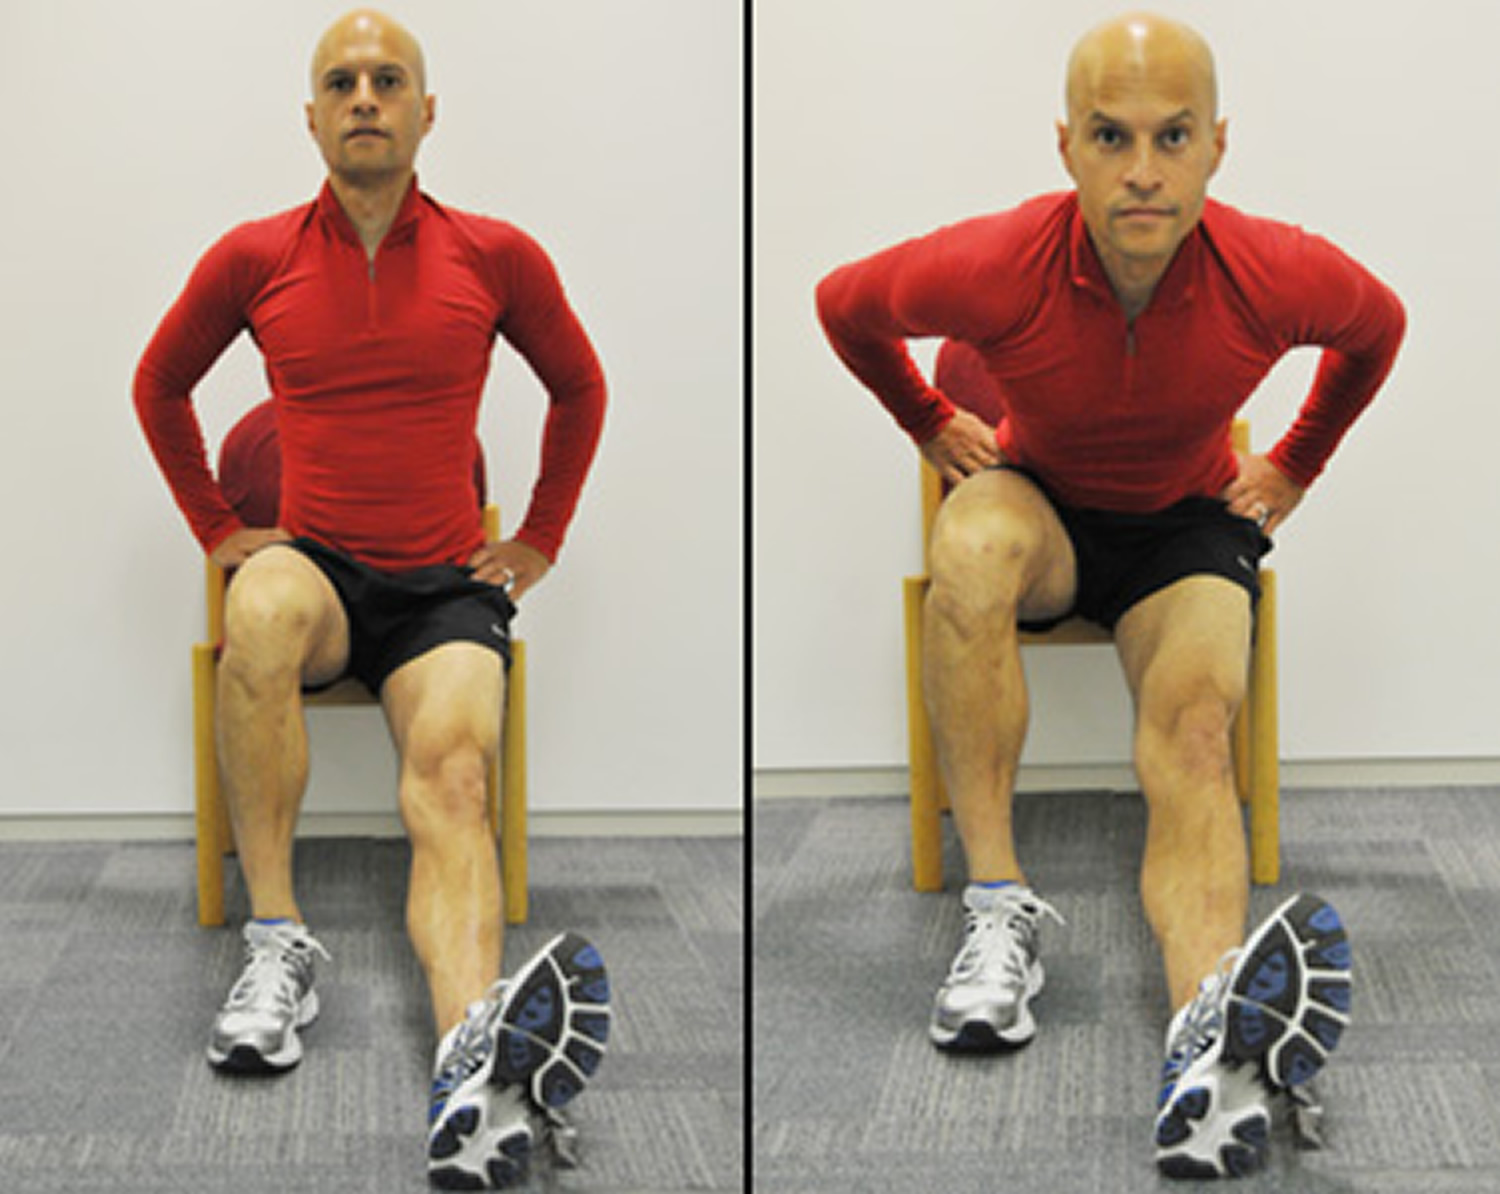 Hamstring stretch with thigh contraction exercise for knee pain